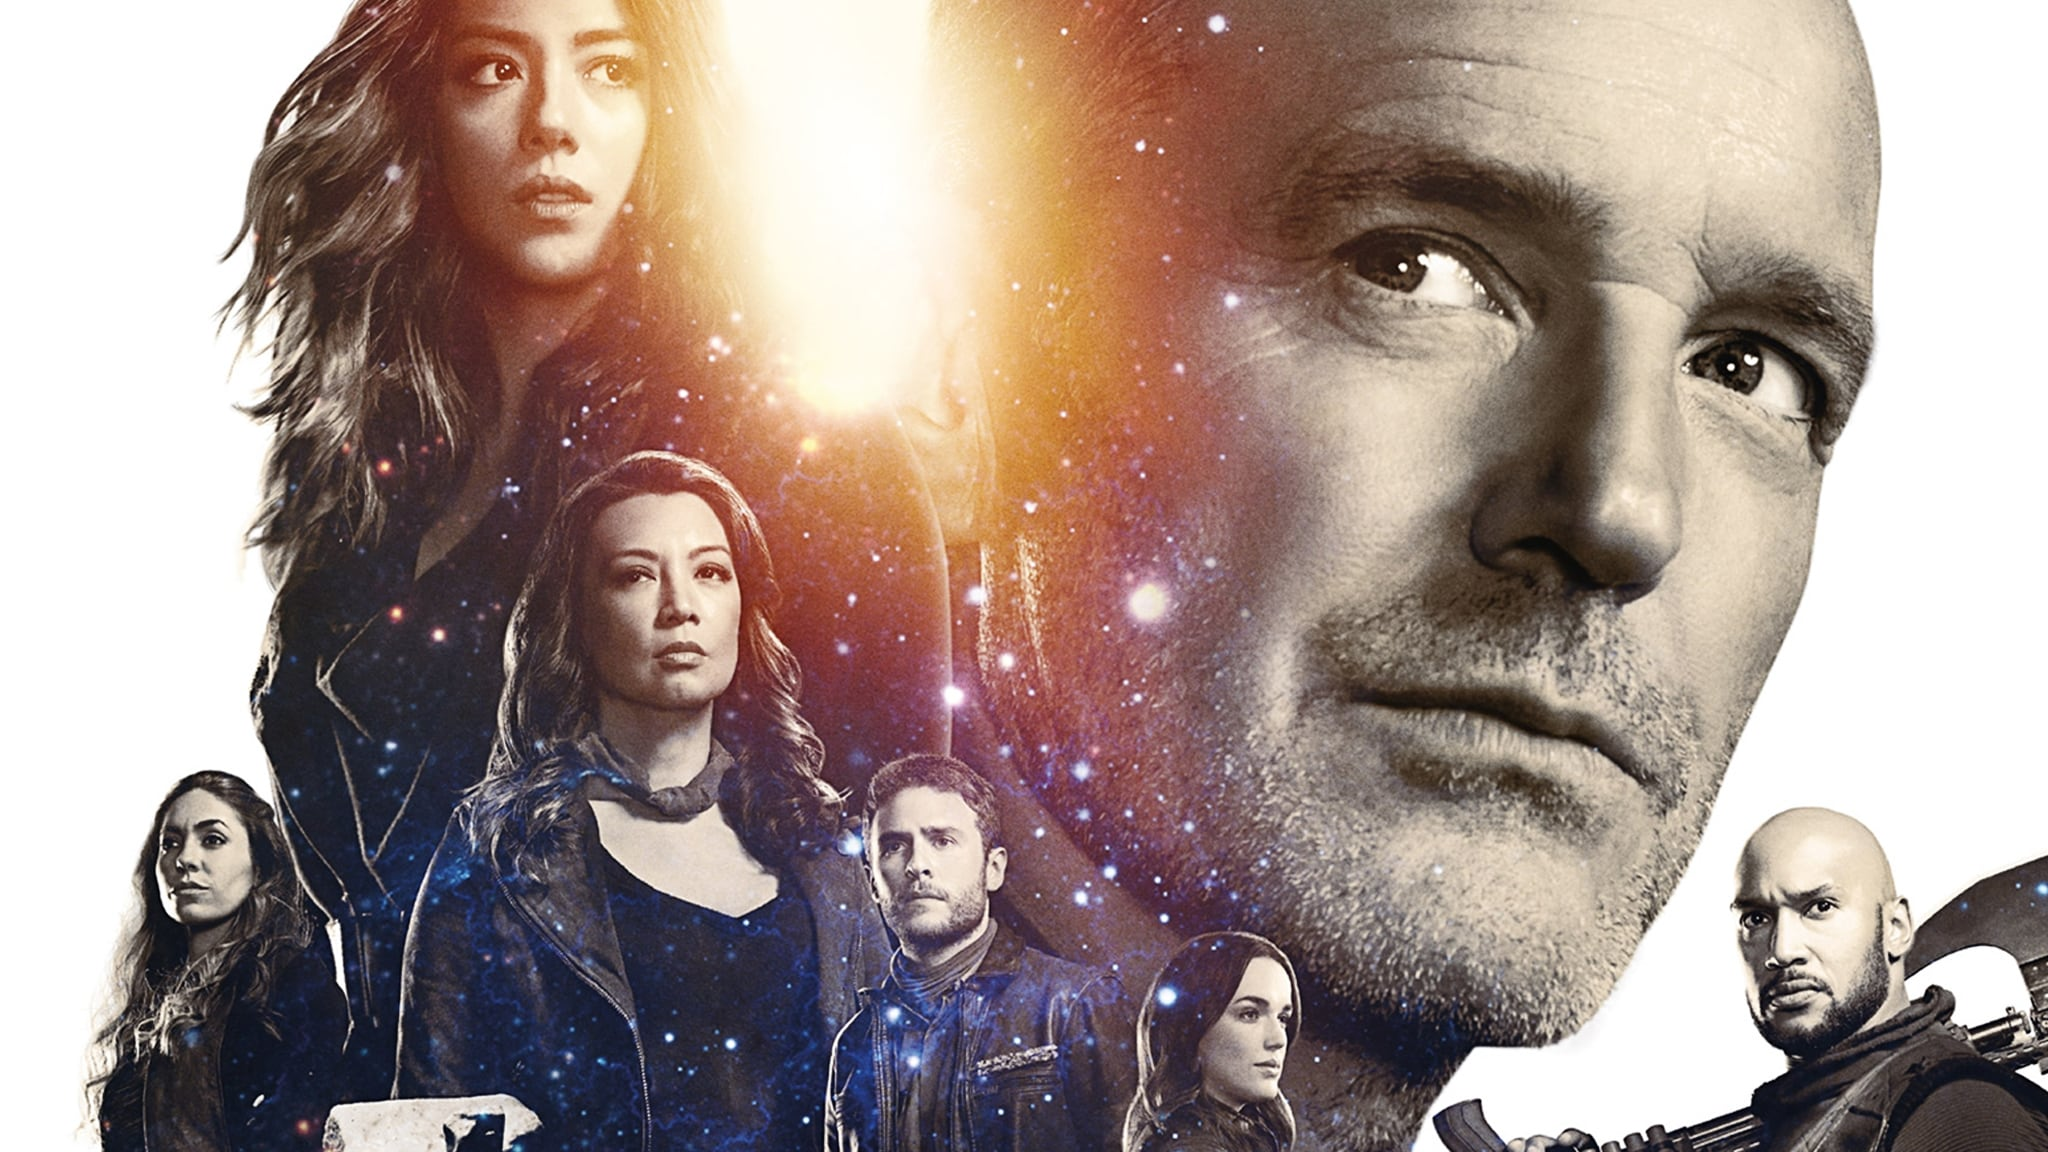 Rai 4 Marvel's Agents of S.H.I.E.L.D. V ep.3